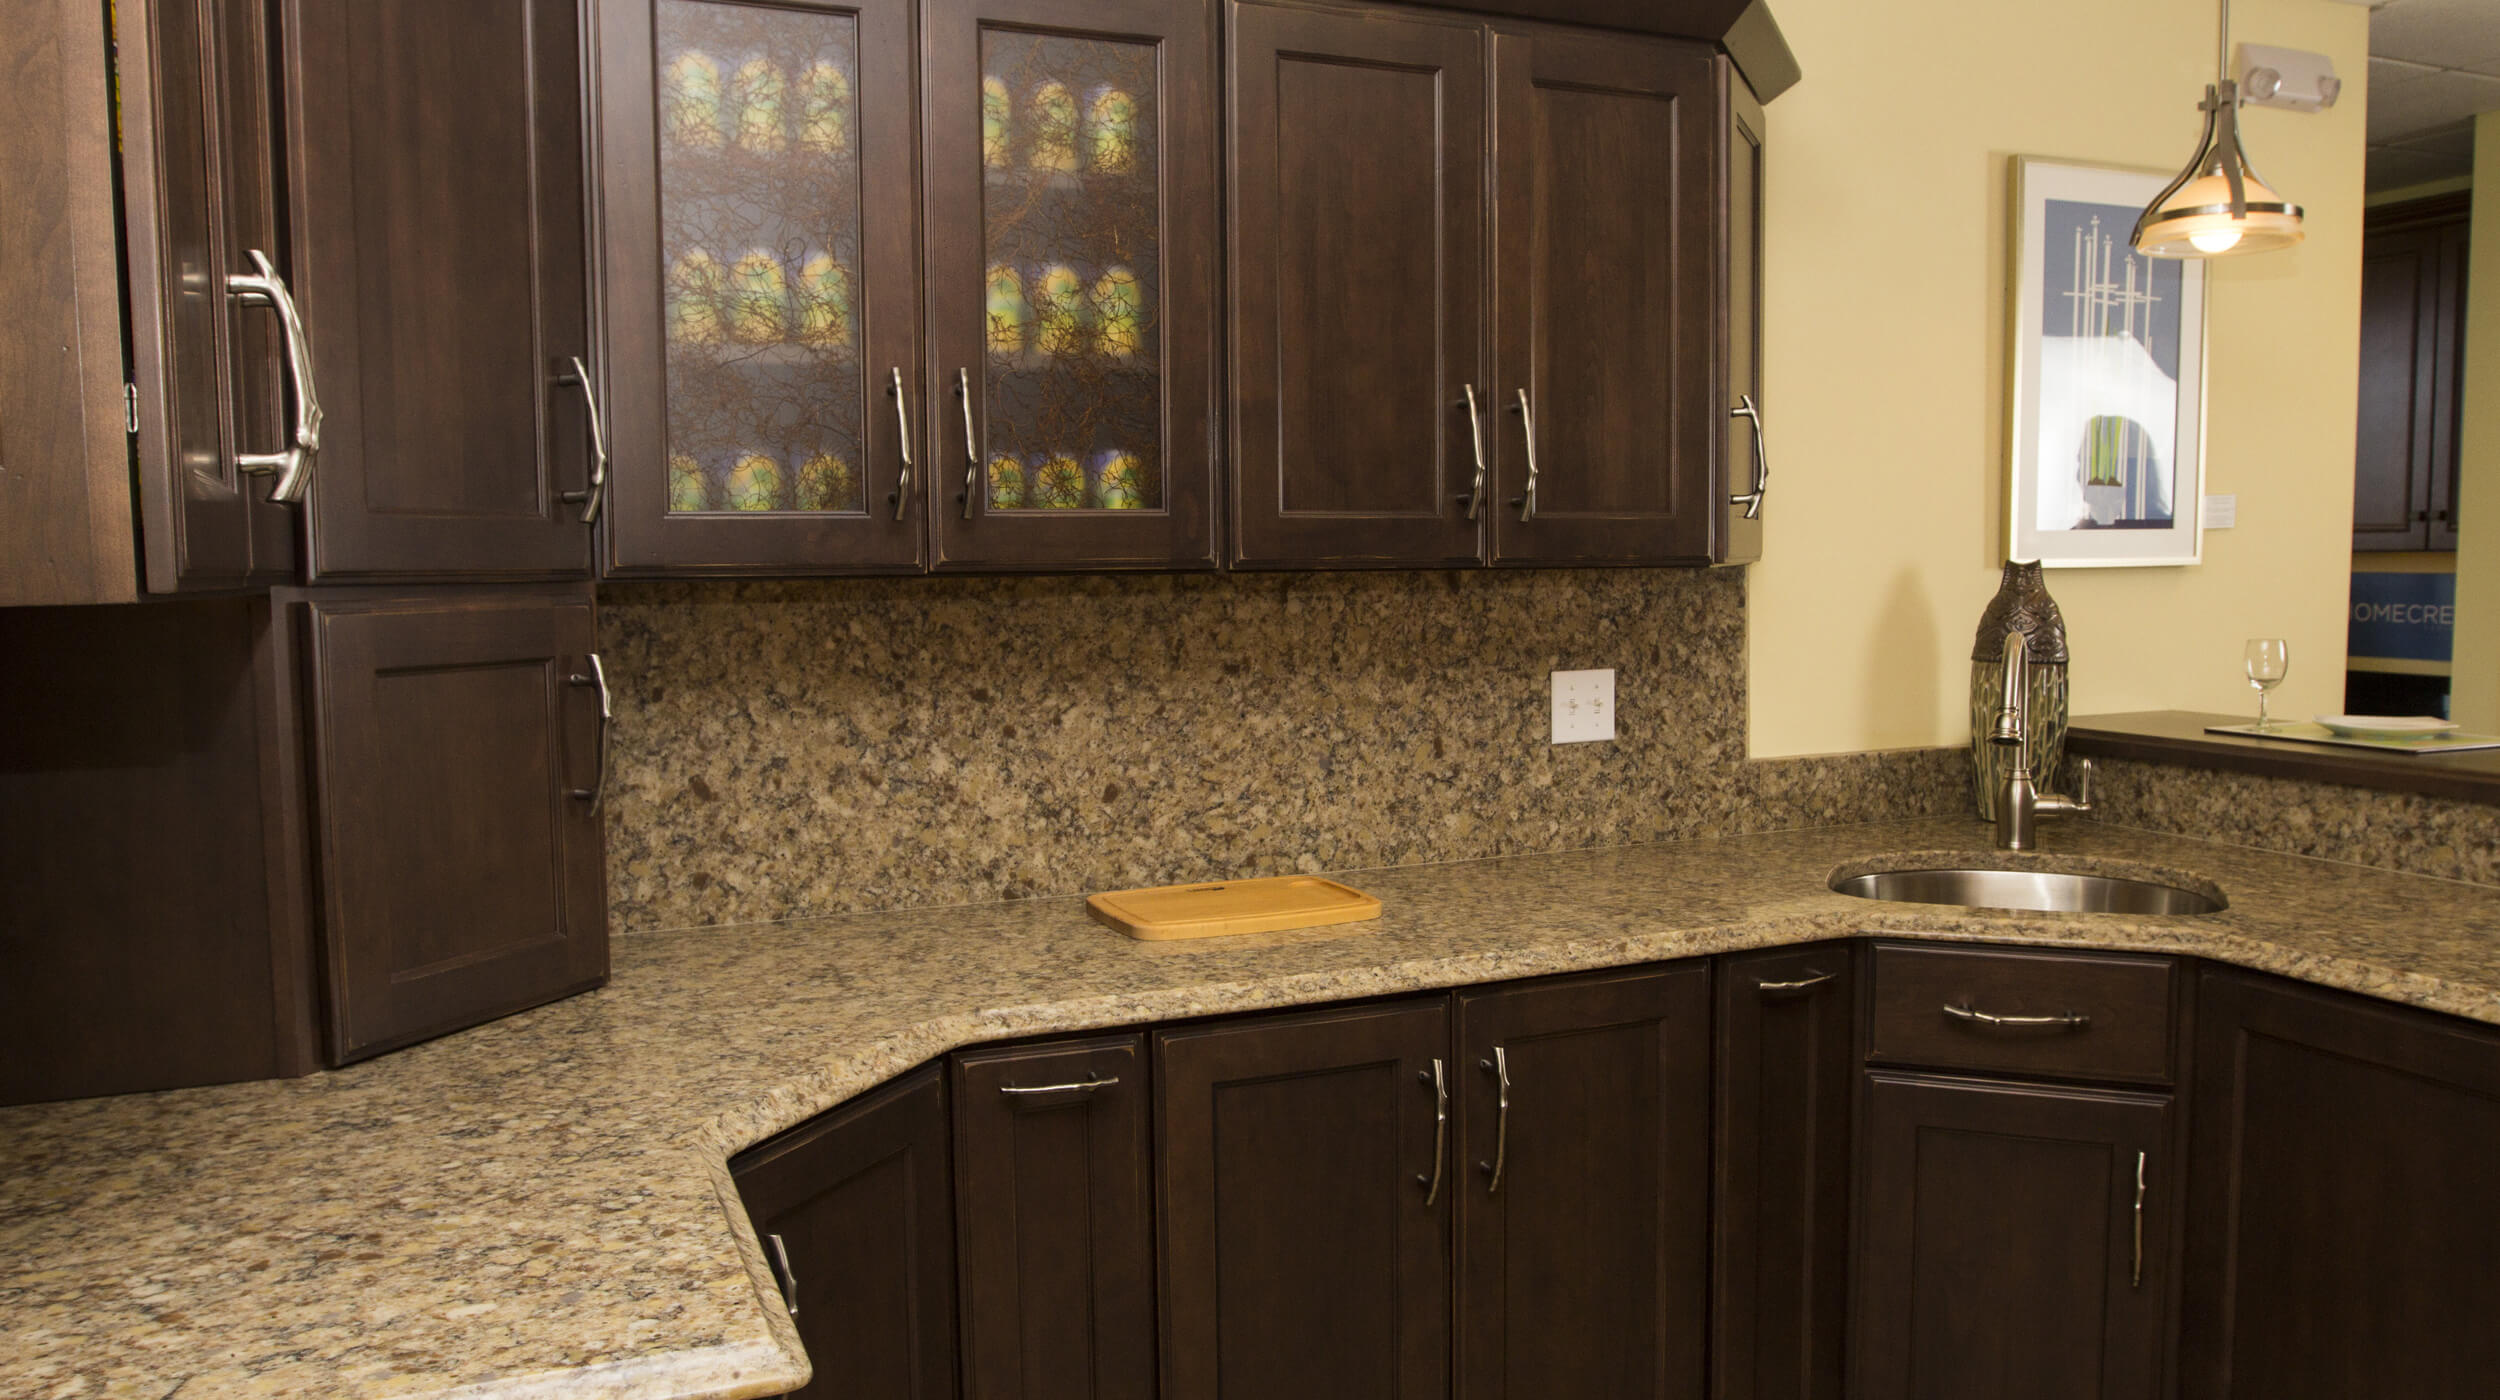 Granite countertop and backsplash